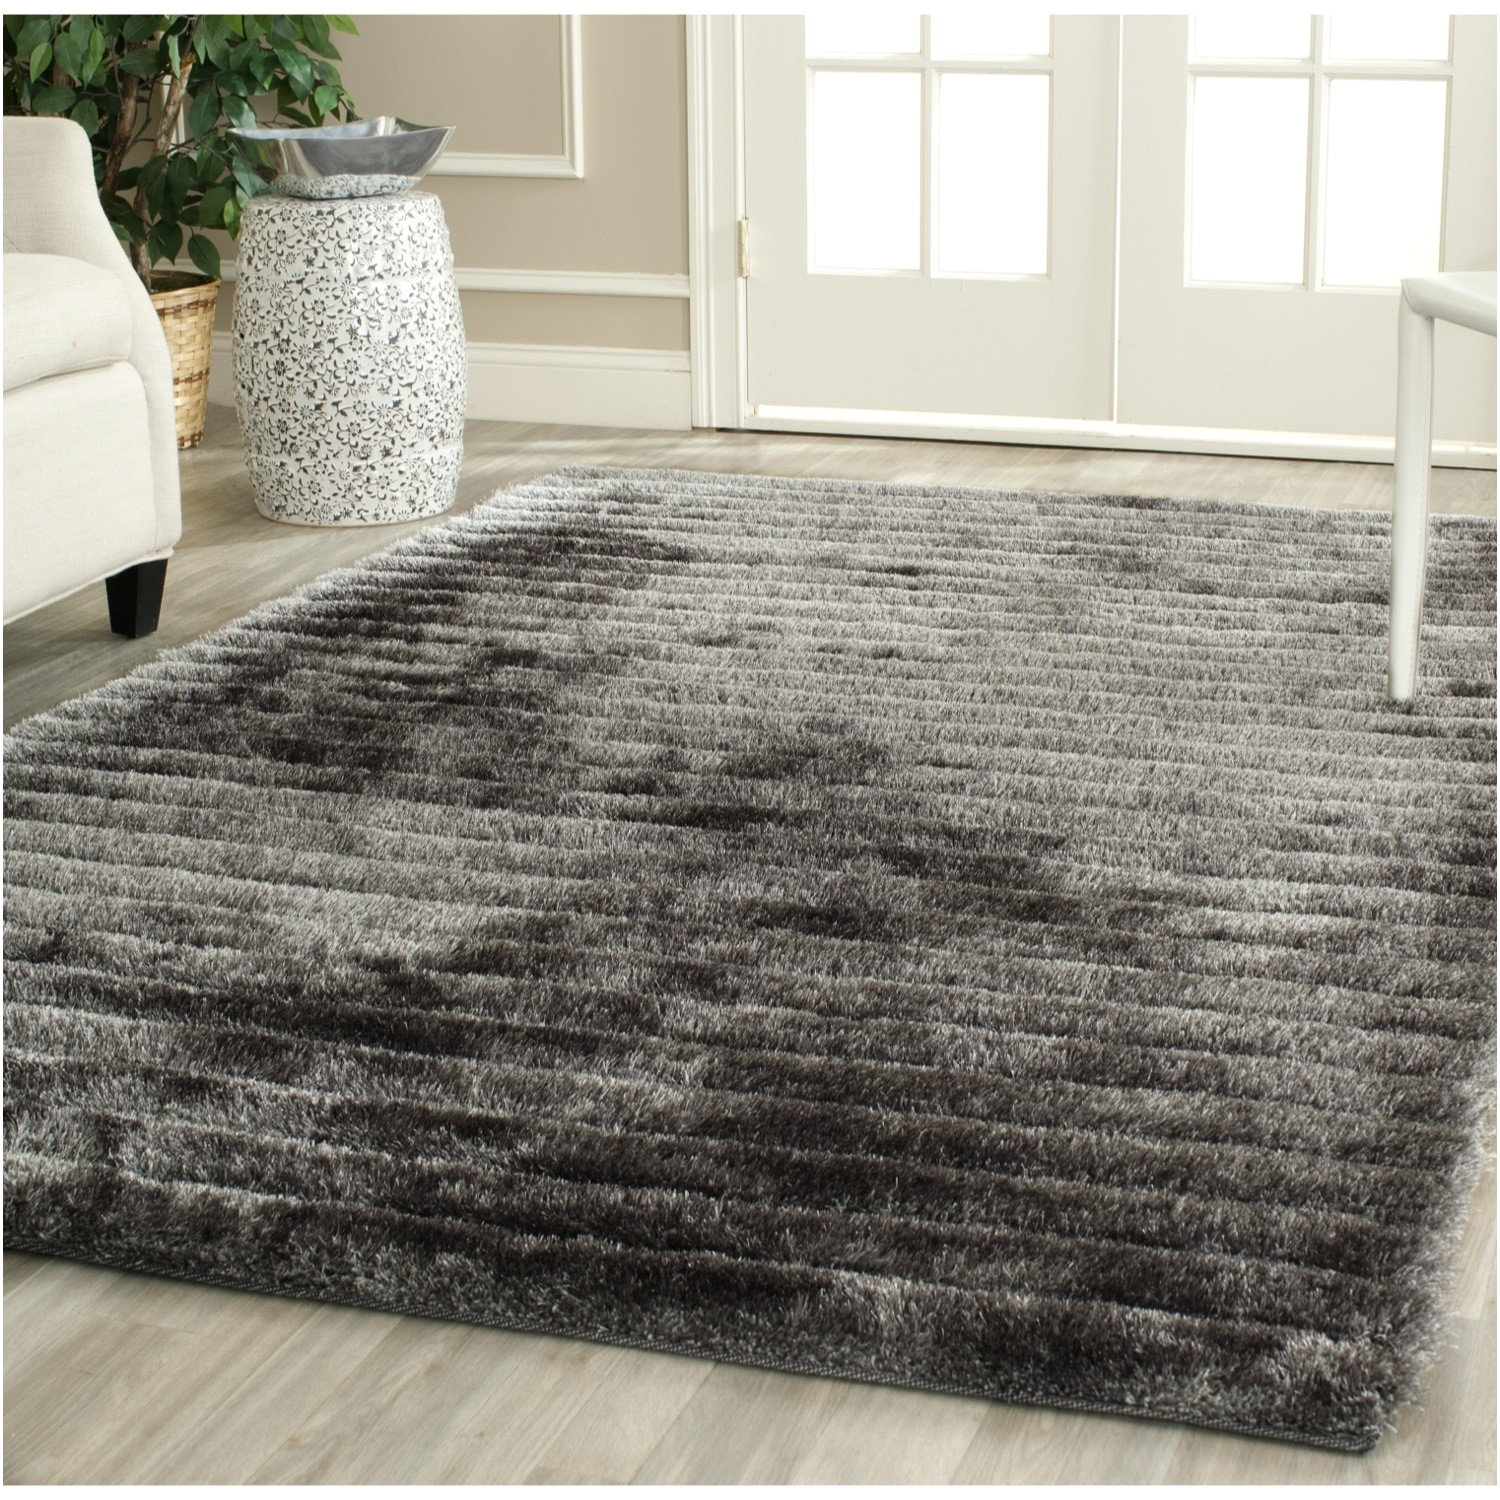 home design safavieh shag rug best of this is not a round rugs costco but